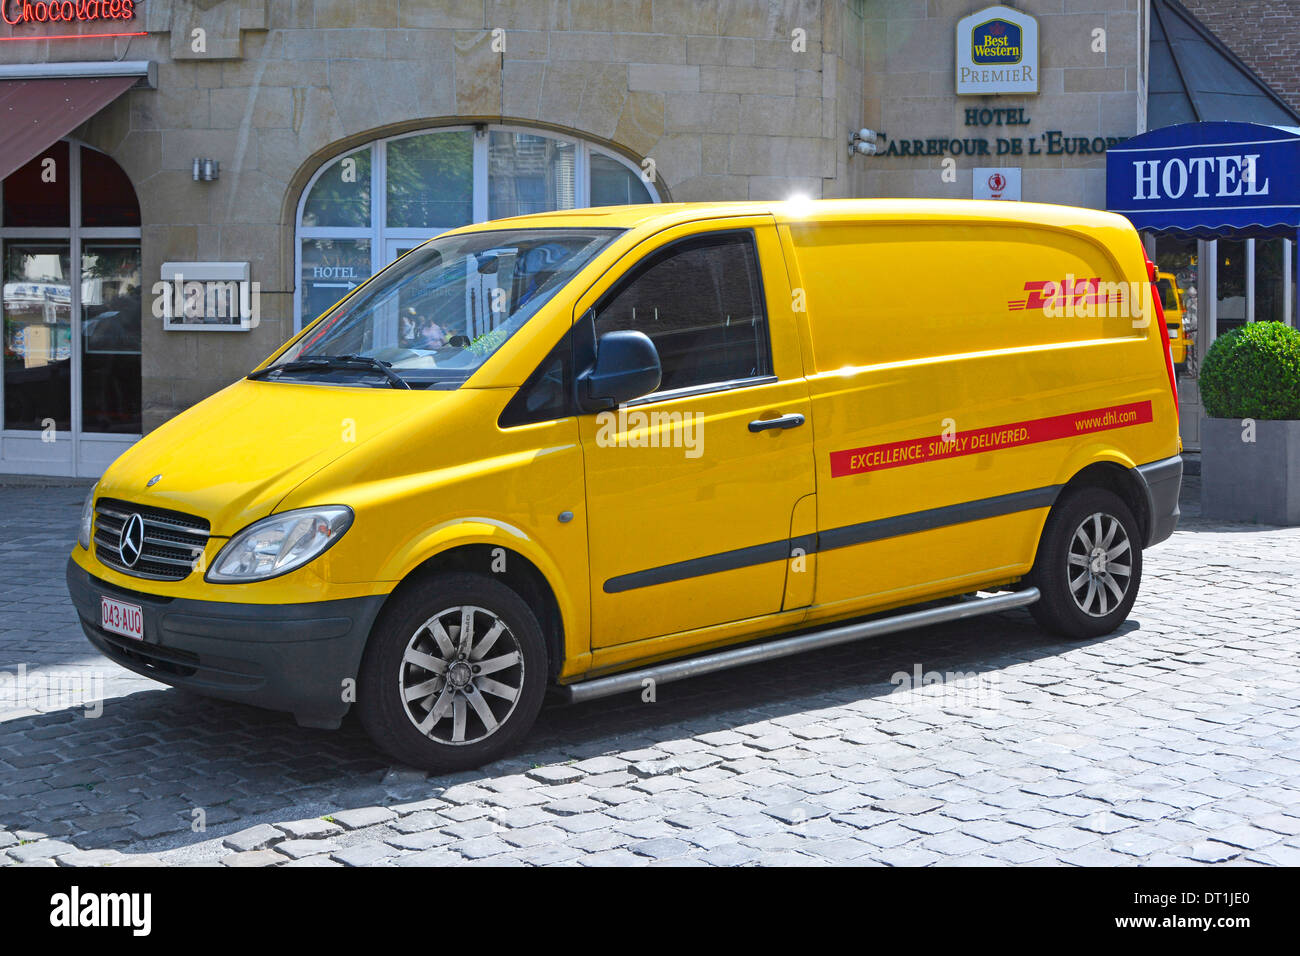 5bb45ae0d25f1b Yellow DHL Mercedes Benz delivery van parked up outside Best Western ...